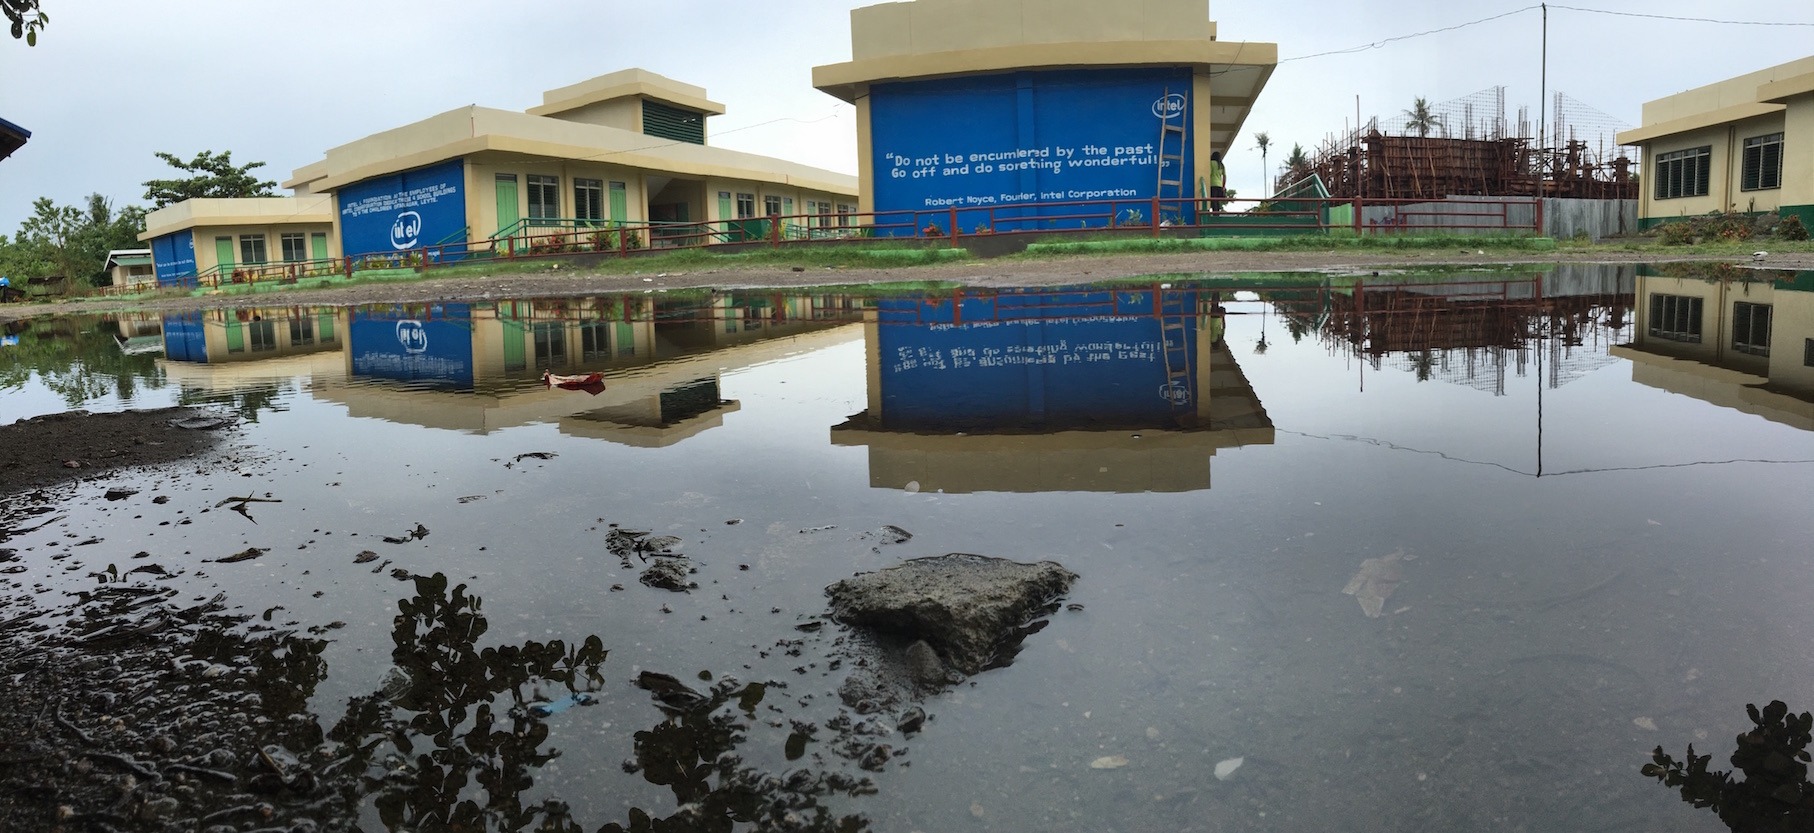 giant puddle in front of school